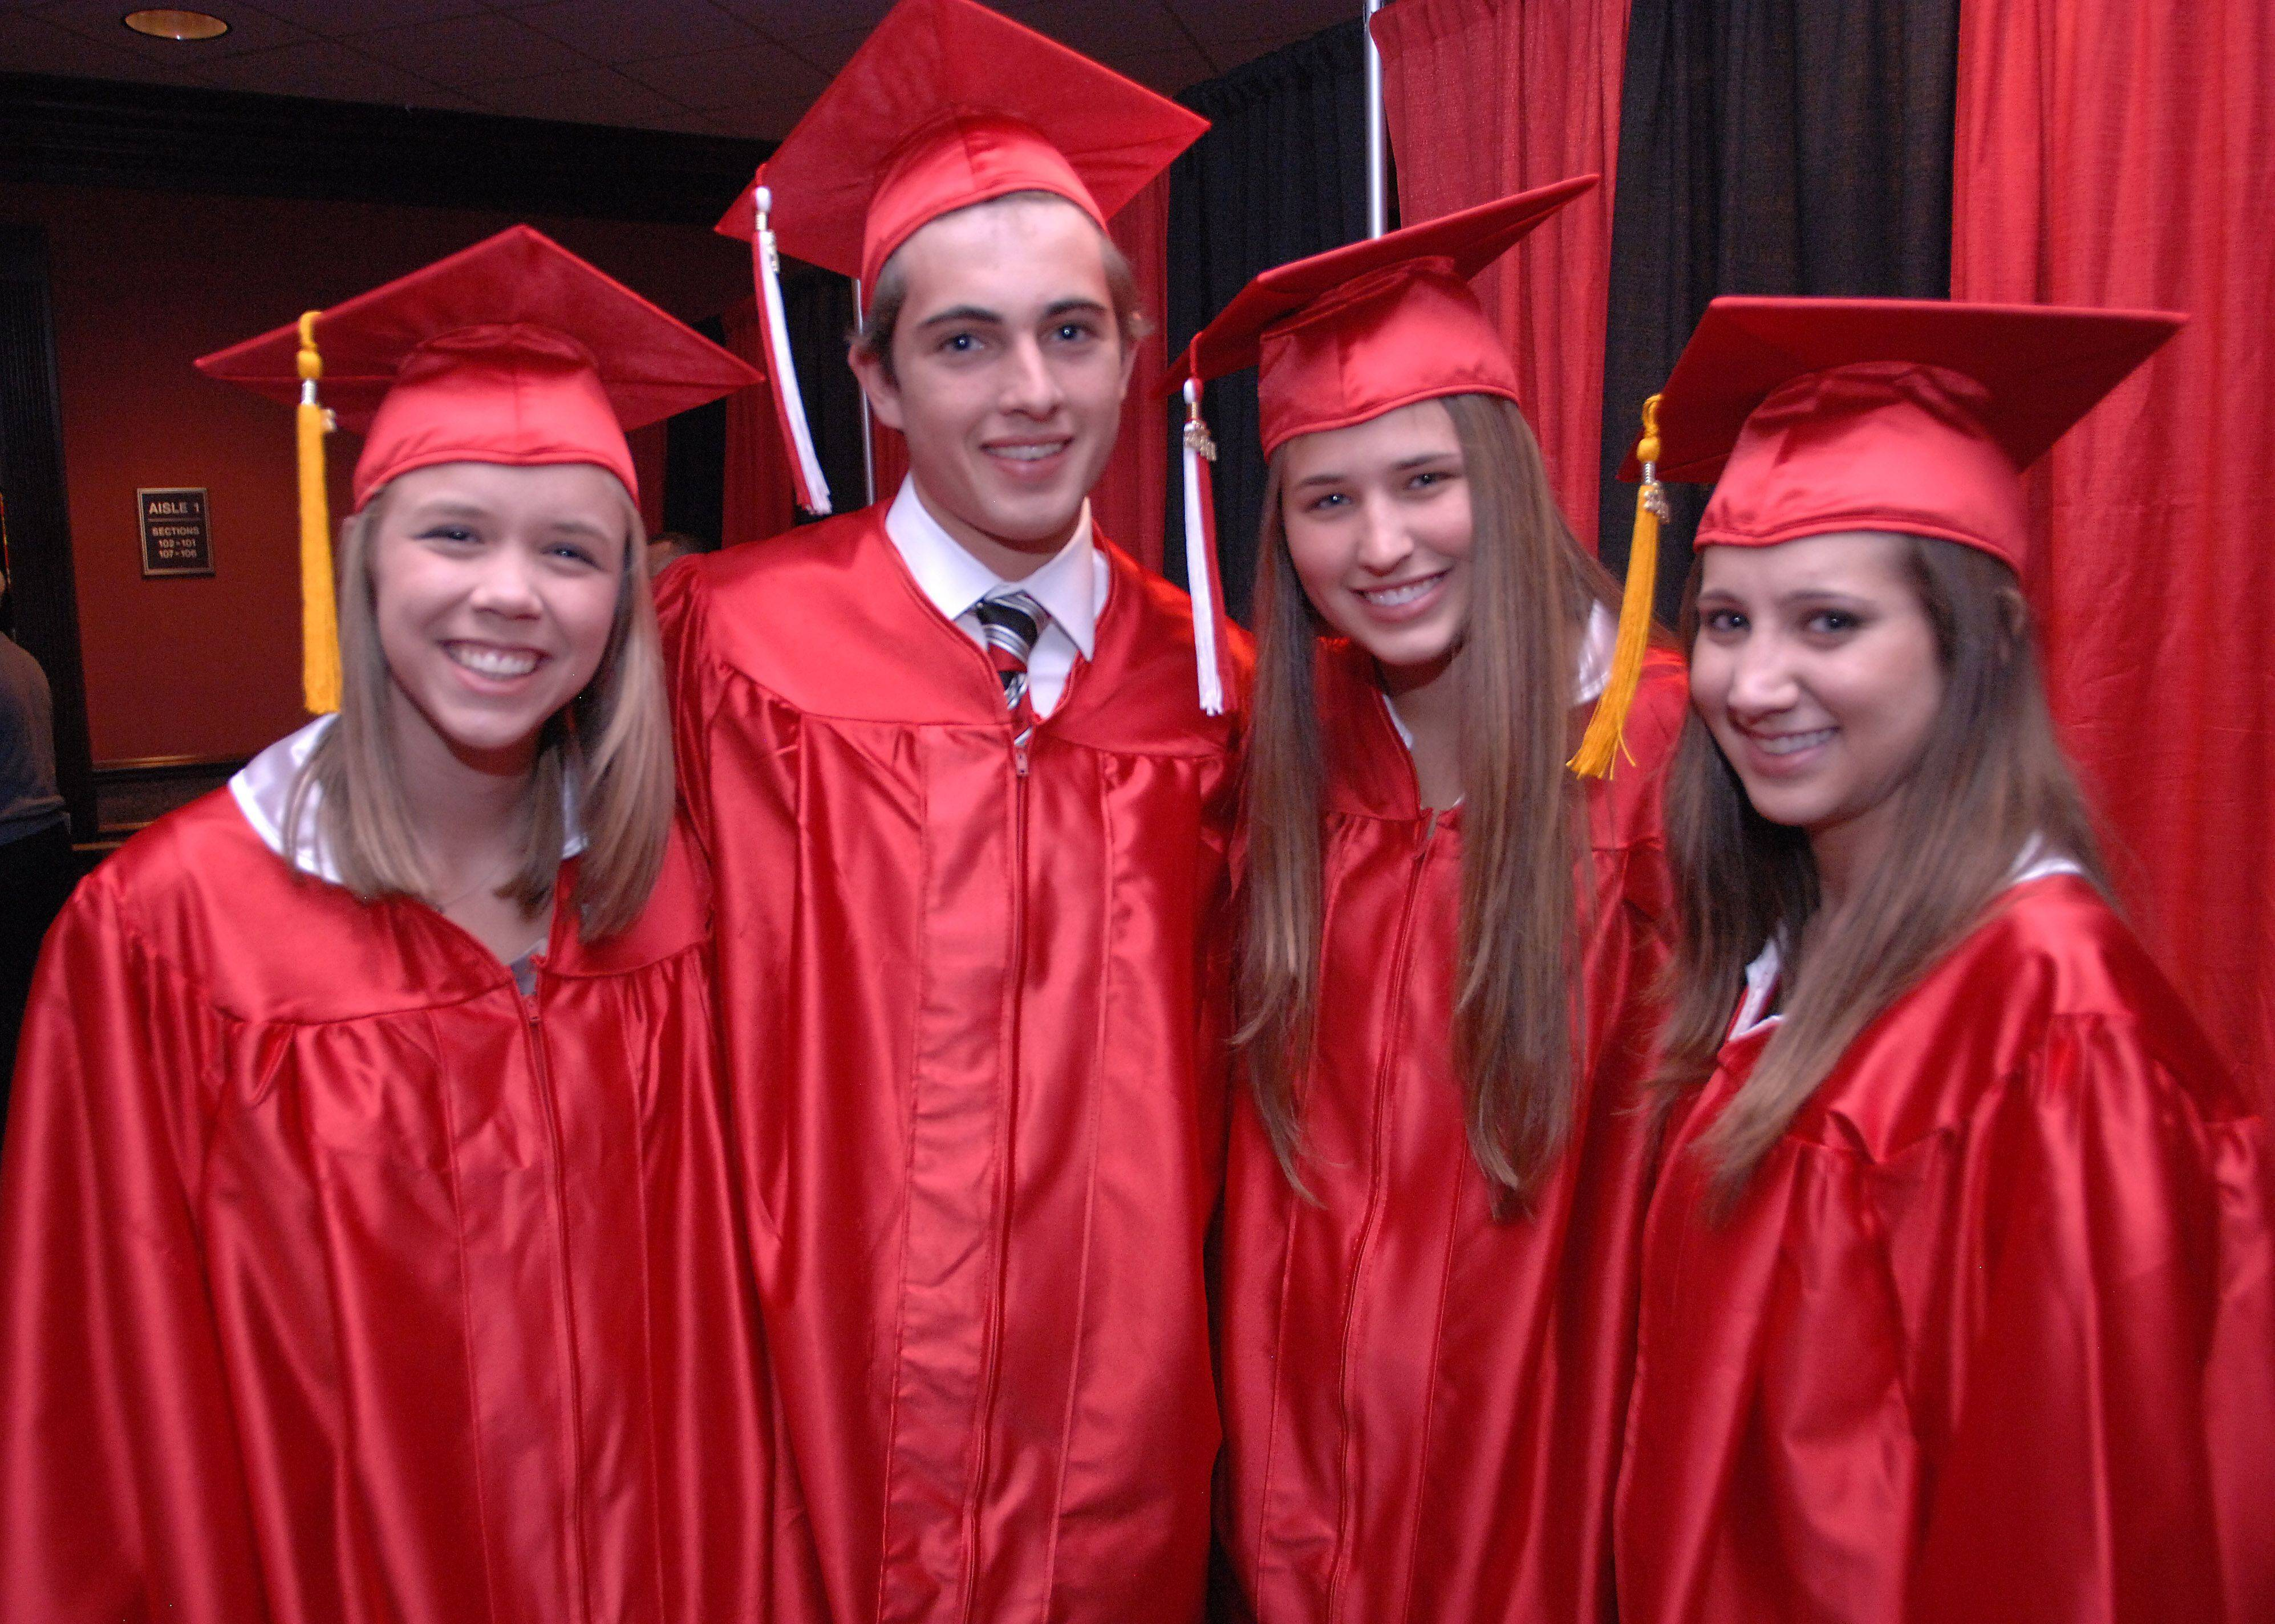 Maine South soon-to-be graduates Lydia Ramsey, Jack Purdy Jr., Elisabeth Roames and Nicole Roman prepare to march into the Rosemont Theatre for their commencement.